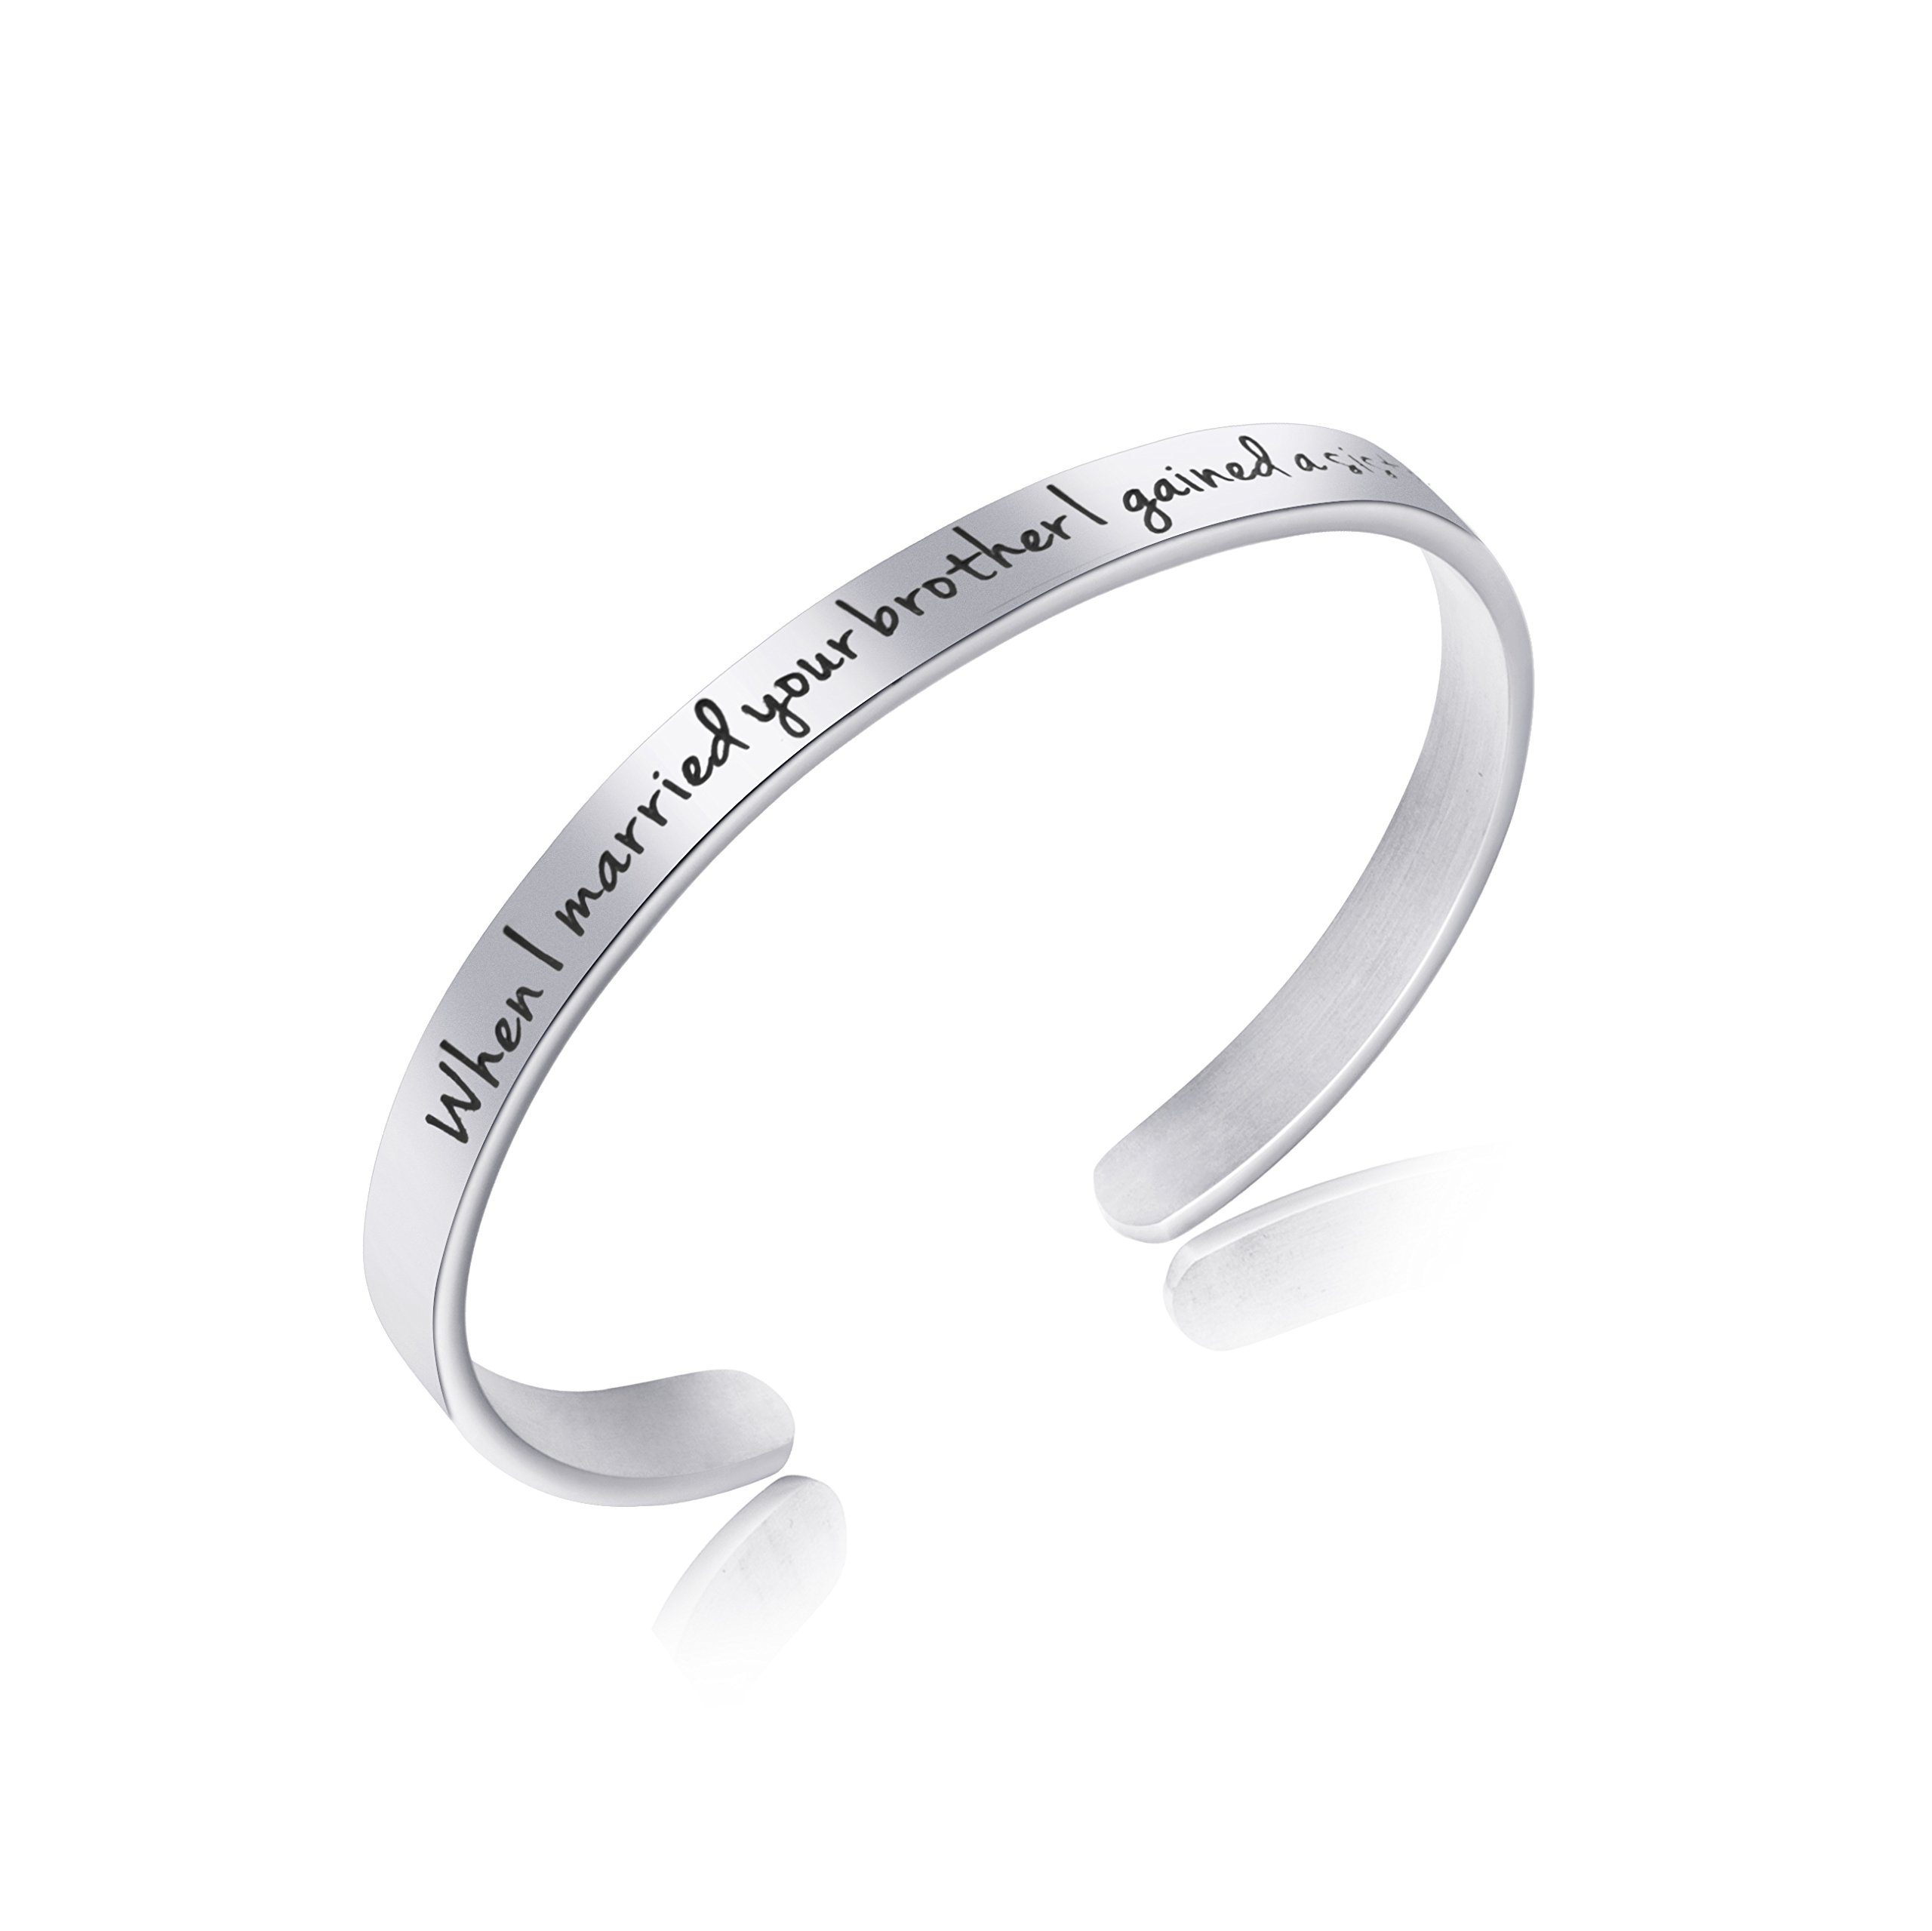 Awegift Sister in Law Jewelry Sister the Groom Wedding Party Gifts Her Personalized Mantra Cuff Bracelet